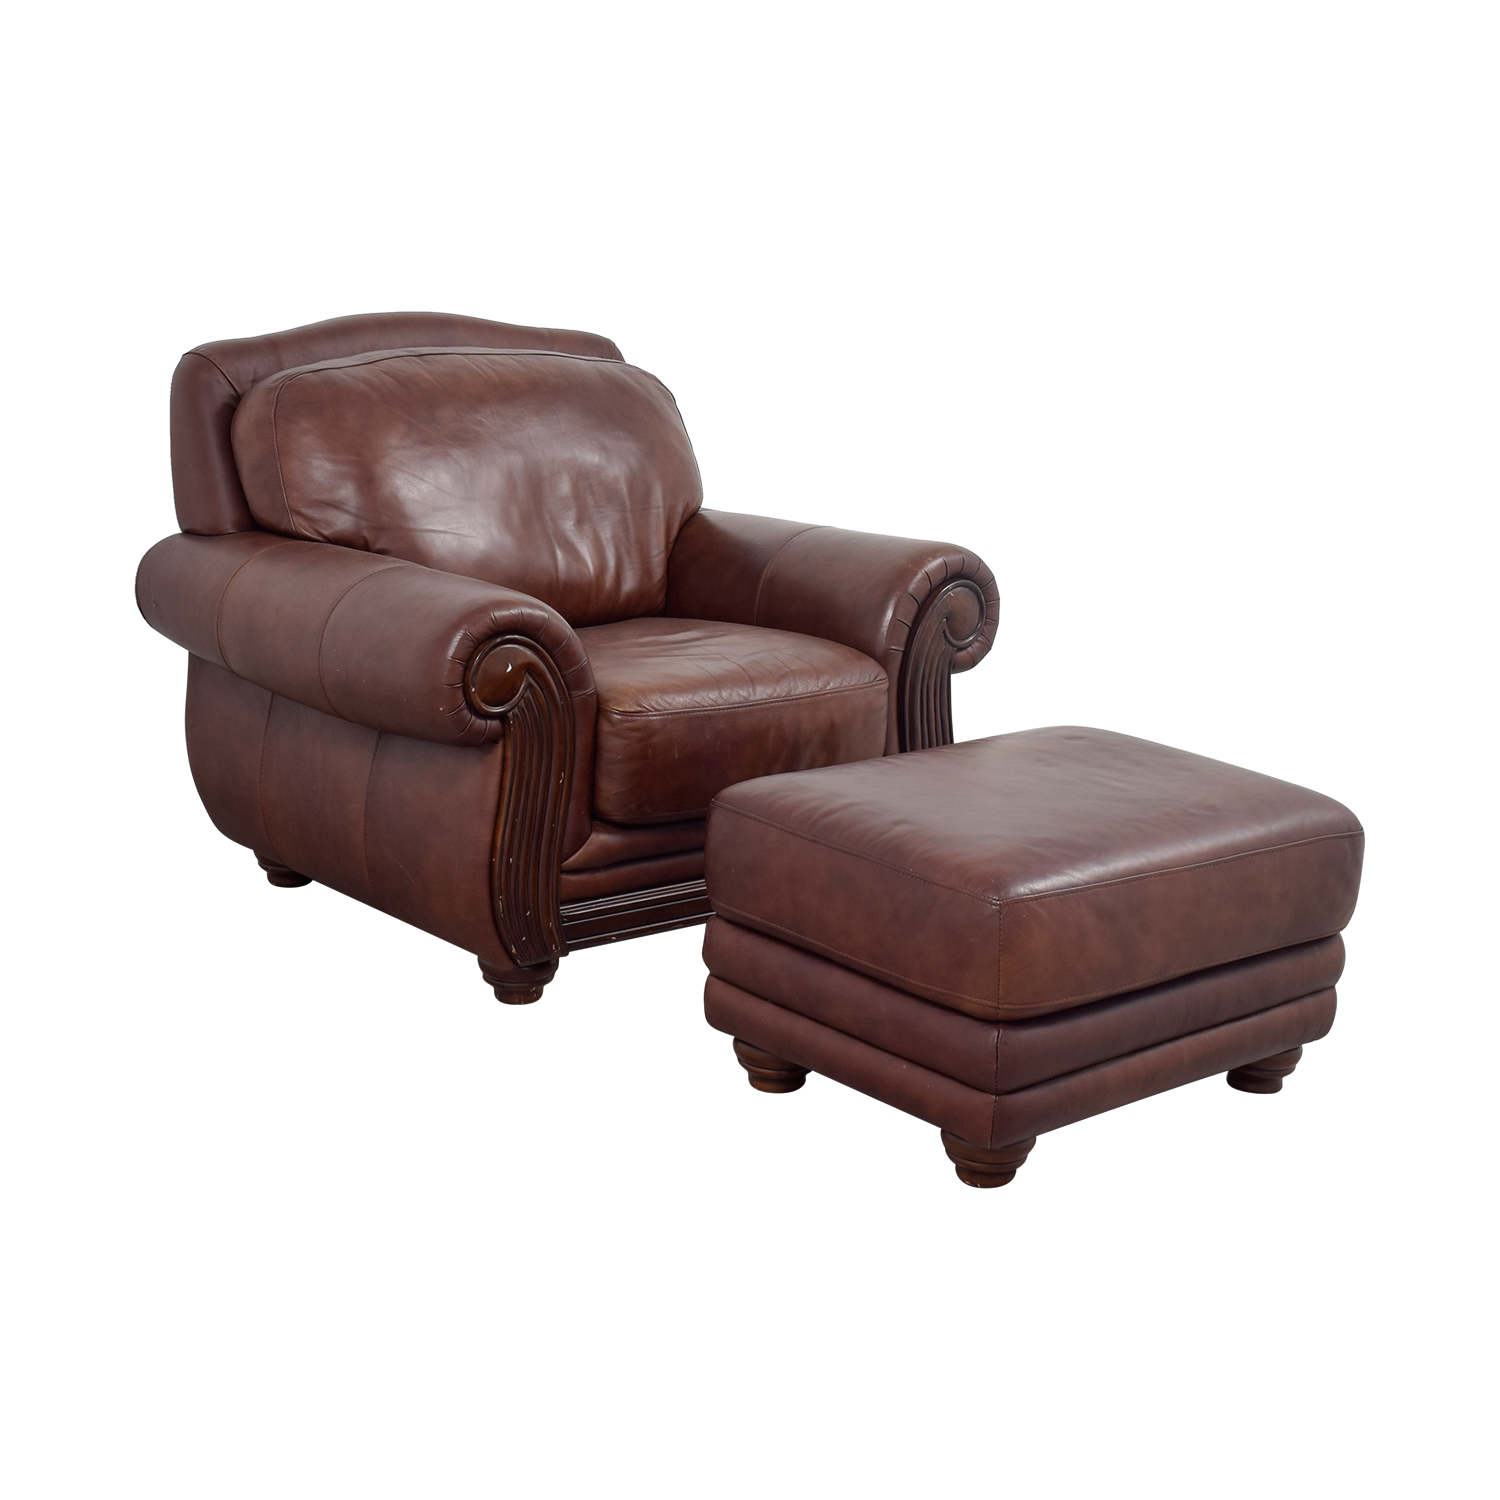 Amazing ... Shop Rooms To Go Brown Leather Chair And Ottoman Rooms To Go ...